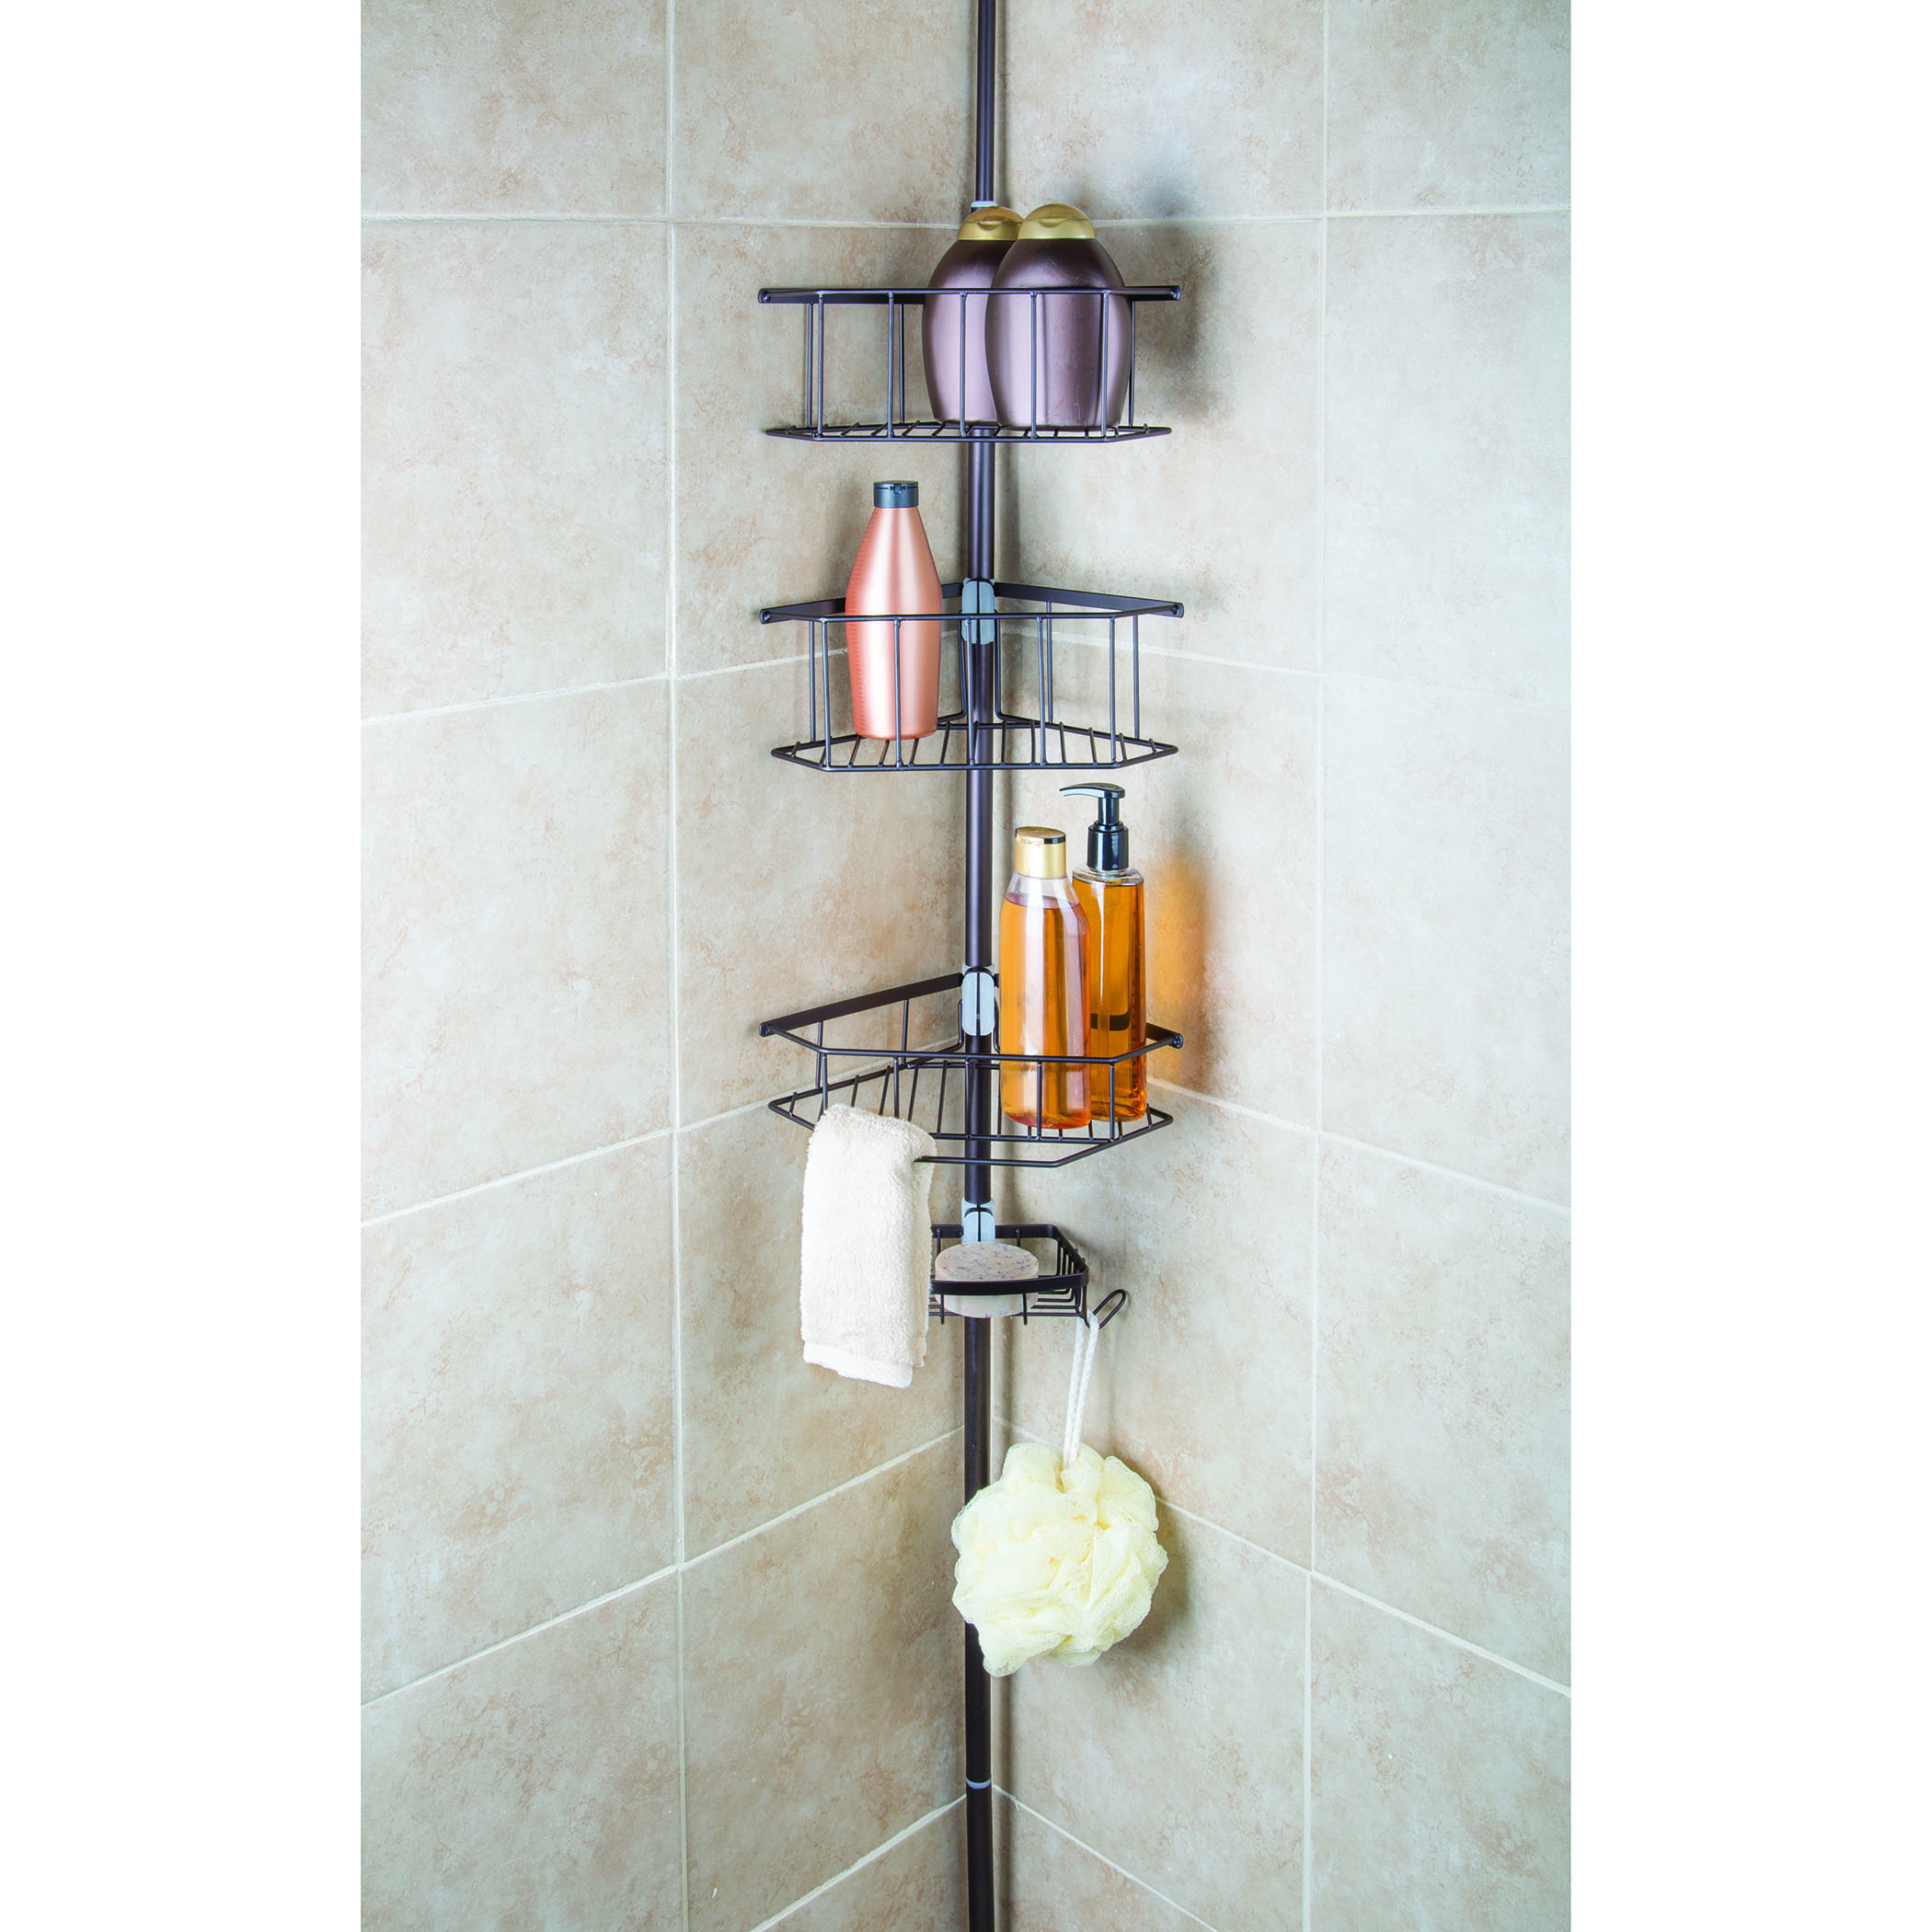 homecrate three tier corner tension pole shower caddy 9 ft height with soap dish ebay. Black Bedroom Furniture Sets. Home Design Ideas